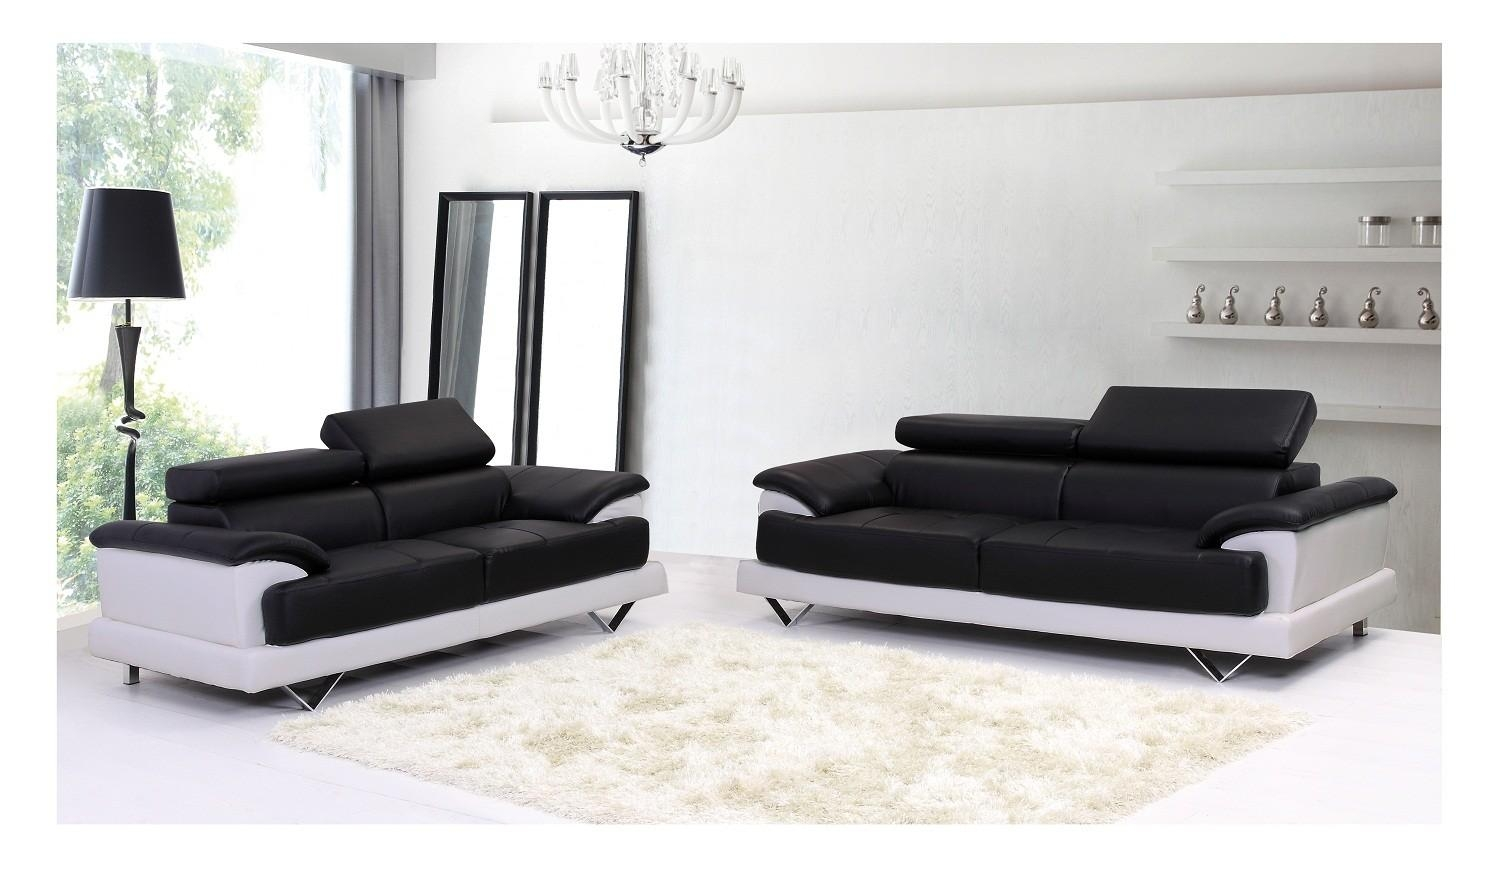 Sofas Center : Dreaded Black And White Sofa Photos Inspirations Intended For Black And White Sofas And Loveseats (View 3 of 20)